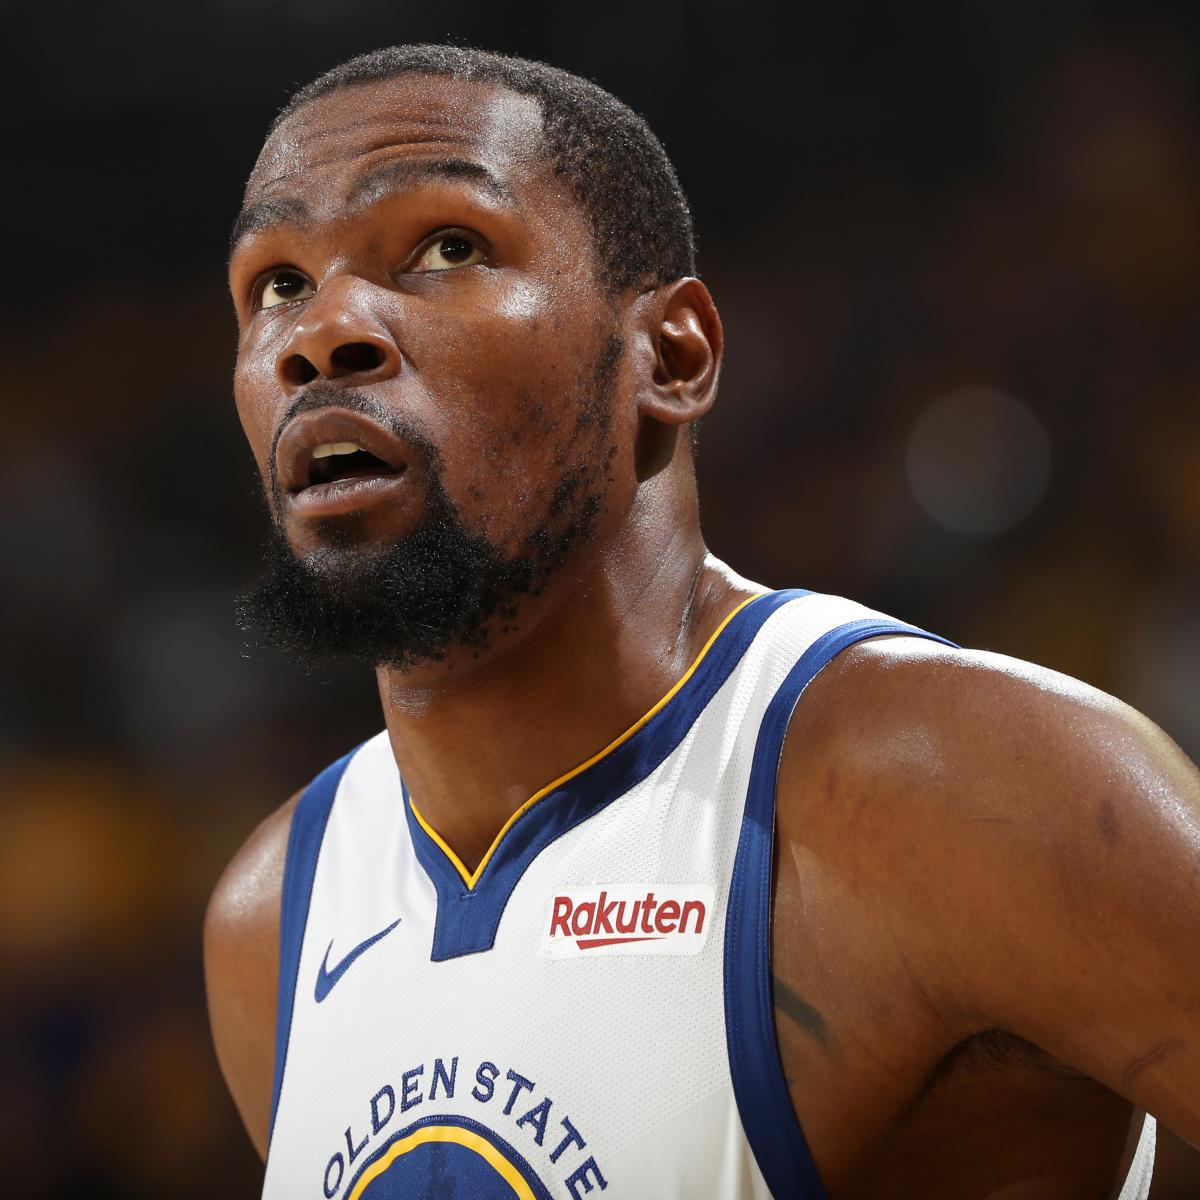 Warriors Come Out To Play Bleacher Report: Warriors Make Out Like 'F--king Giants' In Spite Of Durant